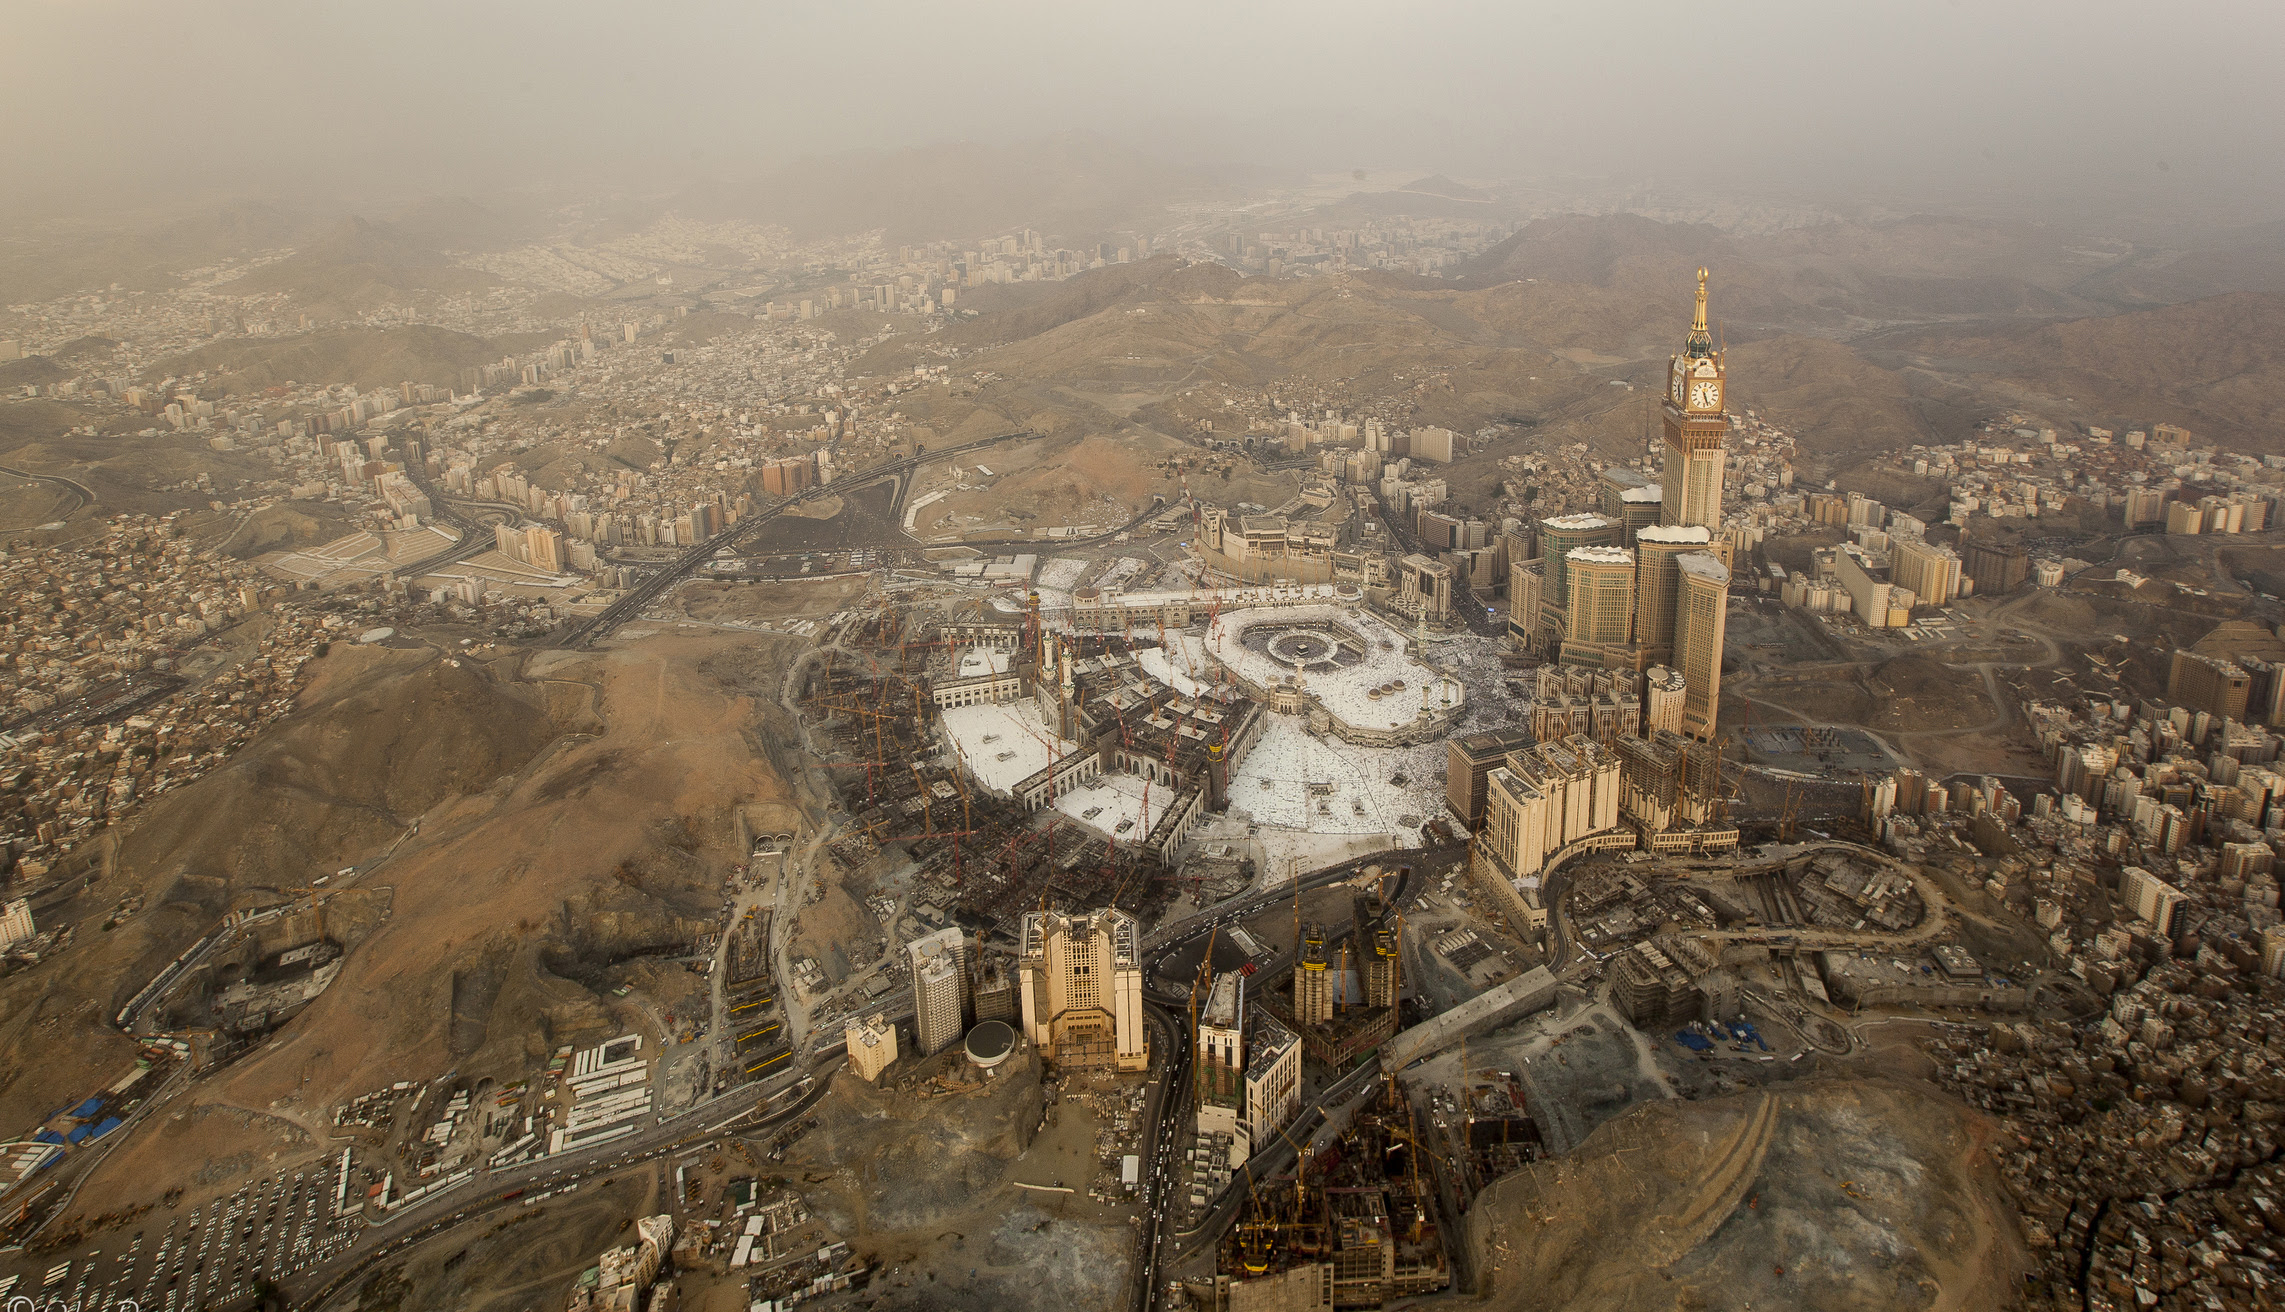 Masjid Al Haram Expansion Acceptance Or Criticism Islamicity